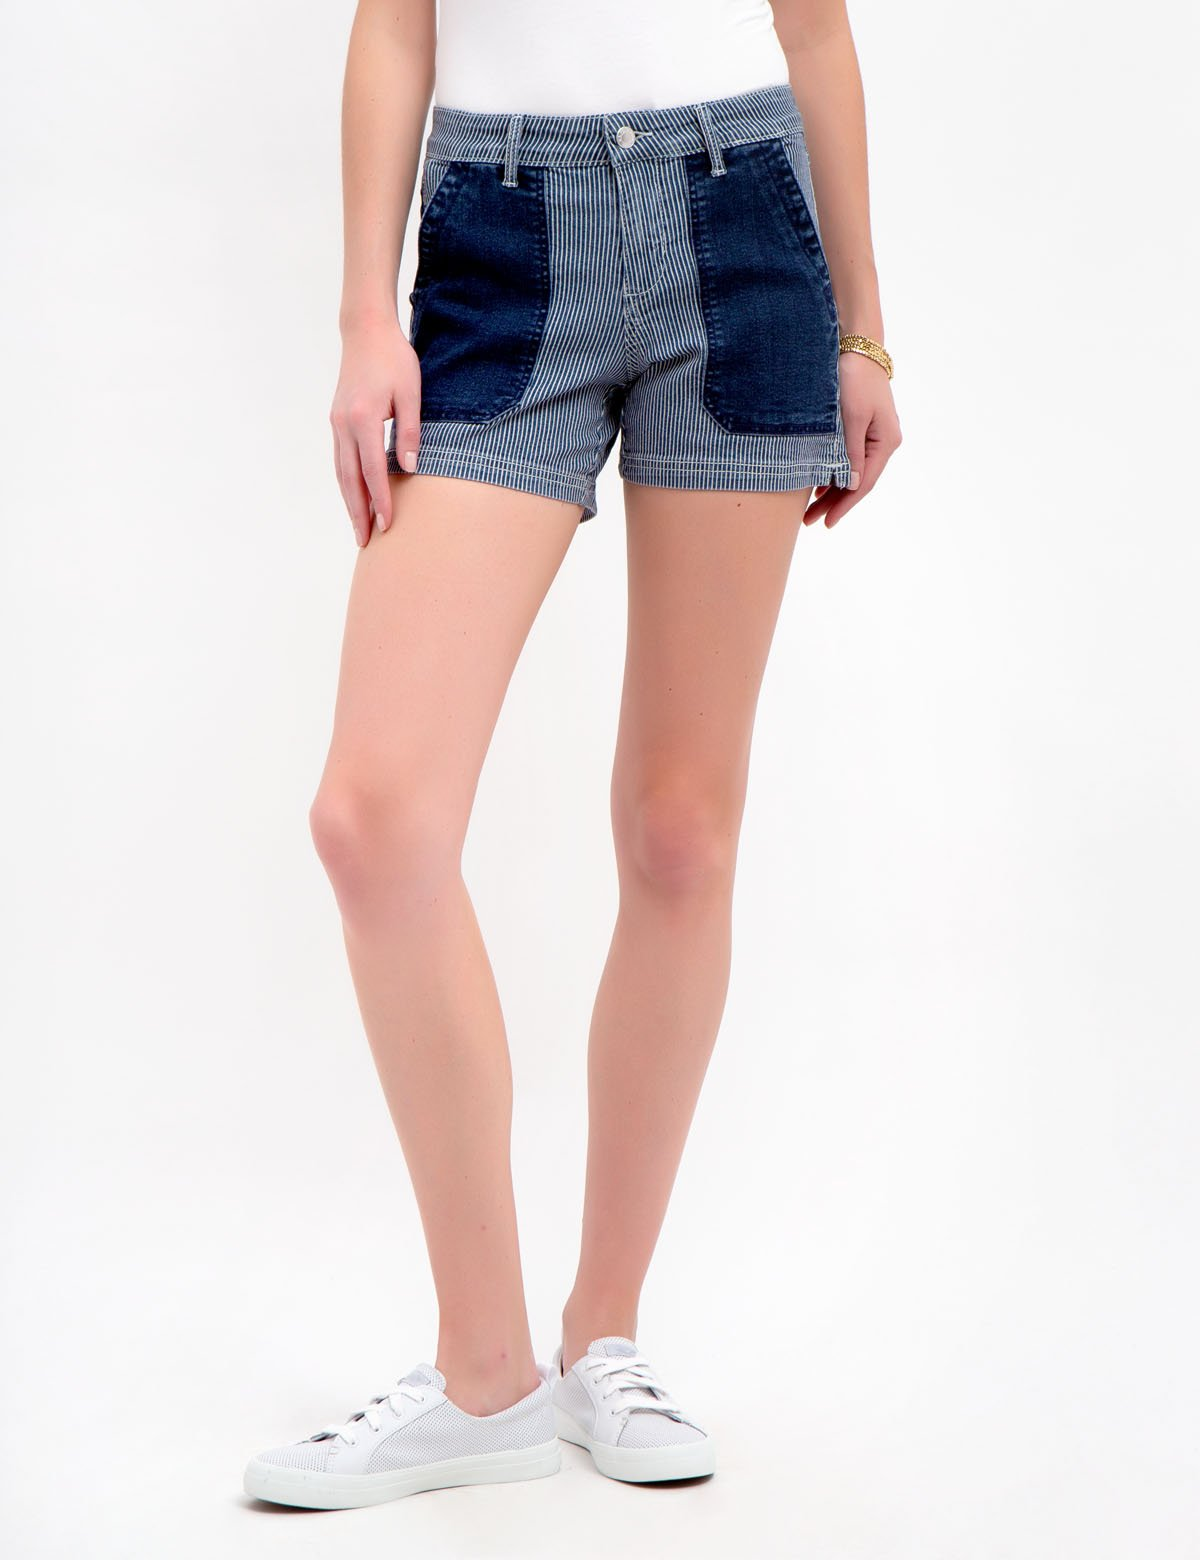 STRIPED RAILROAD SHORTS - U.S. Polo Assn.